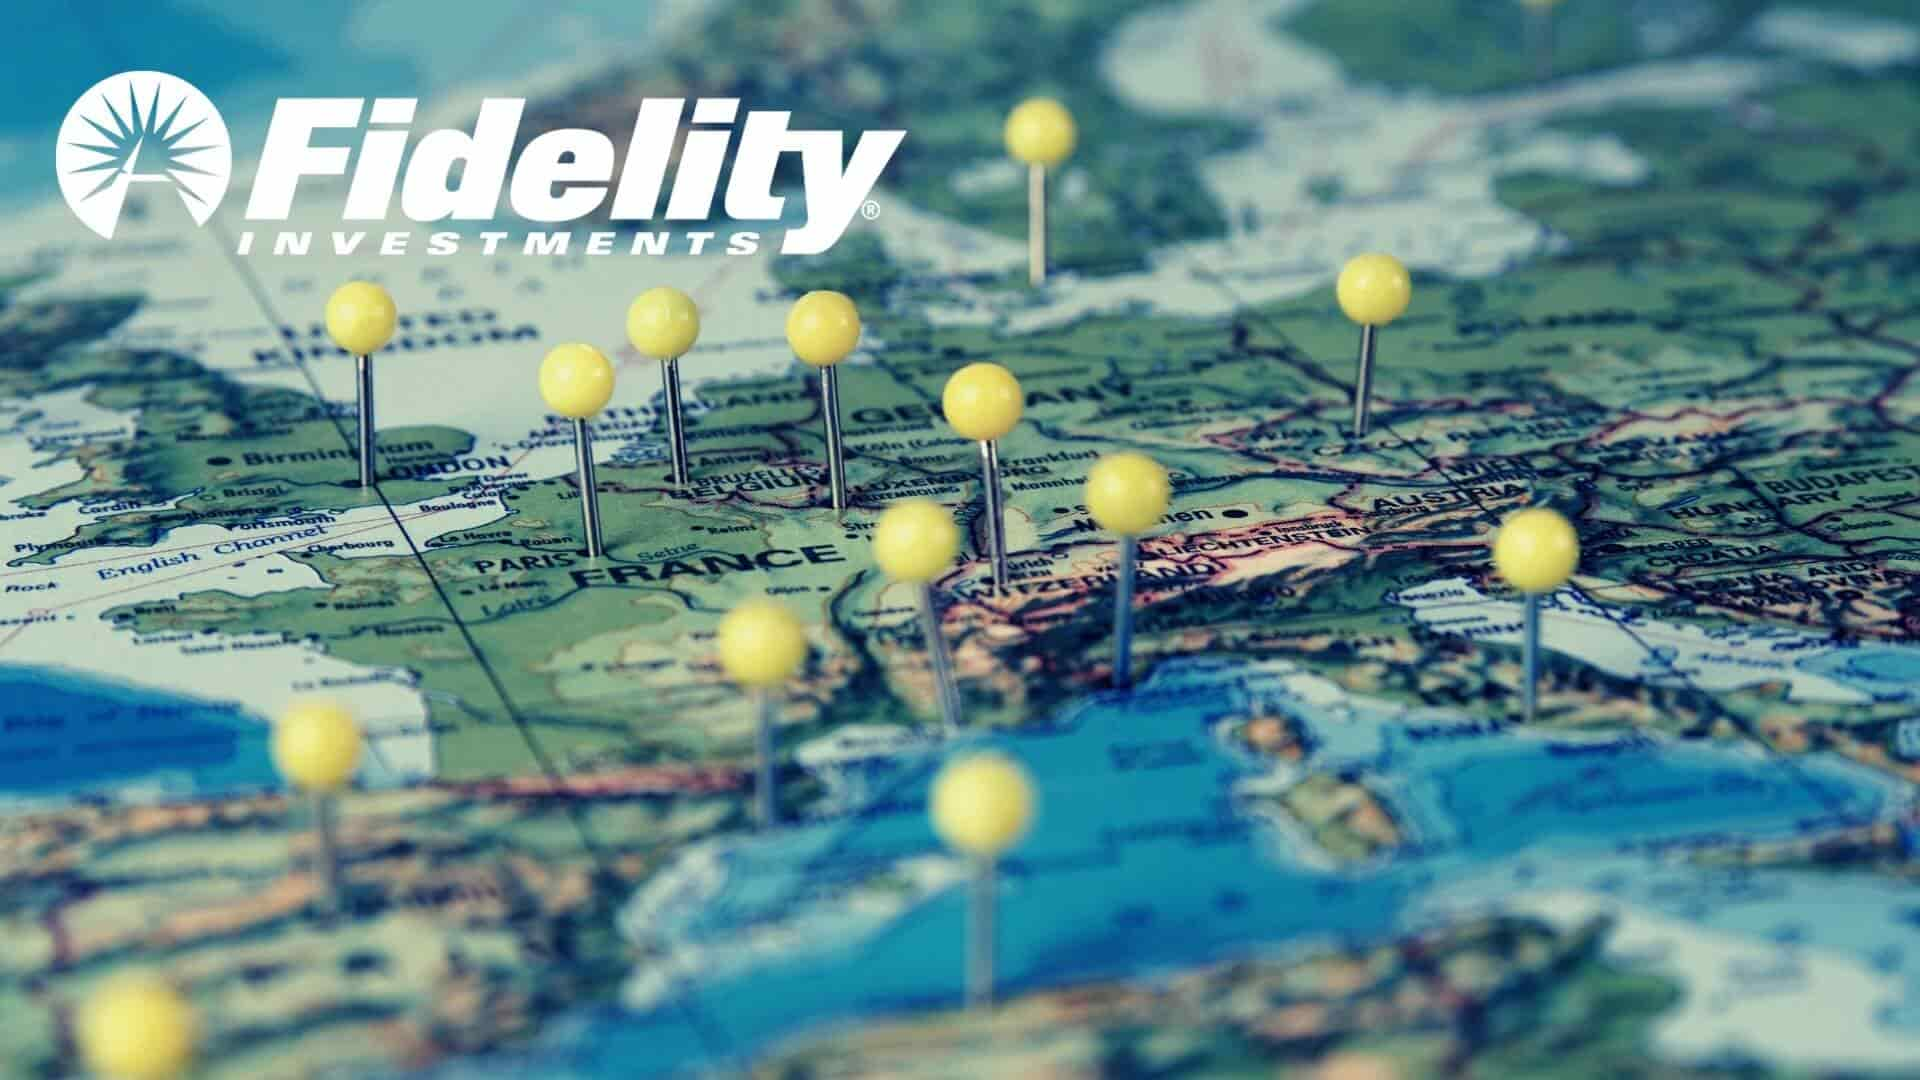 Fidelity launches cryptocurrency business in Europe